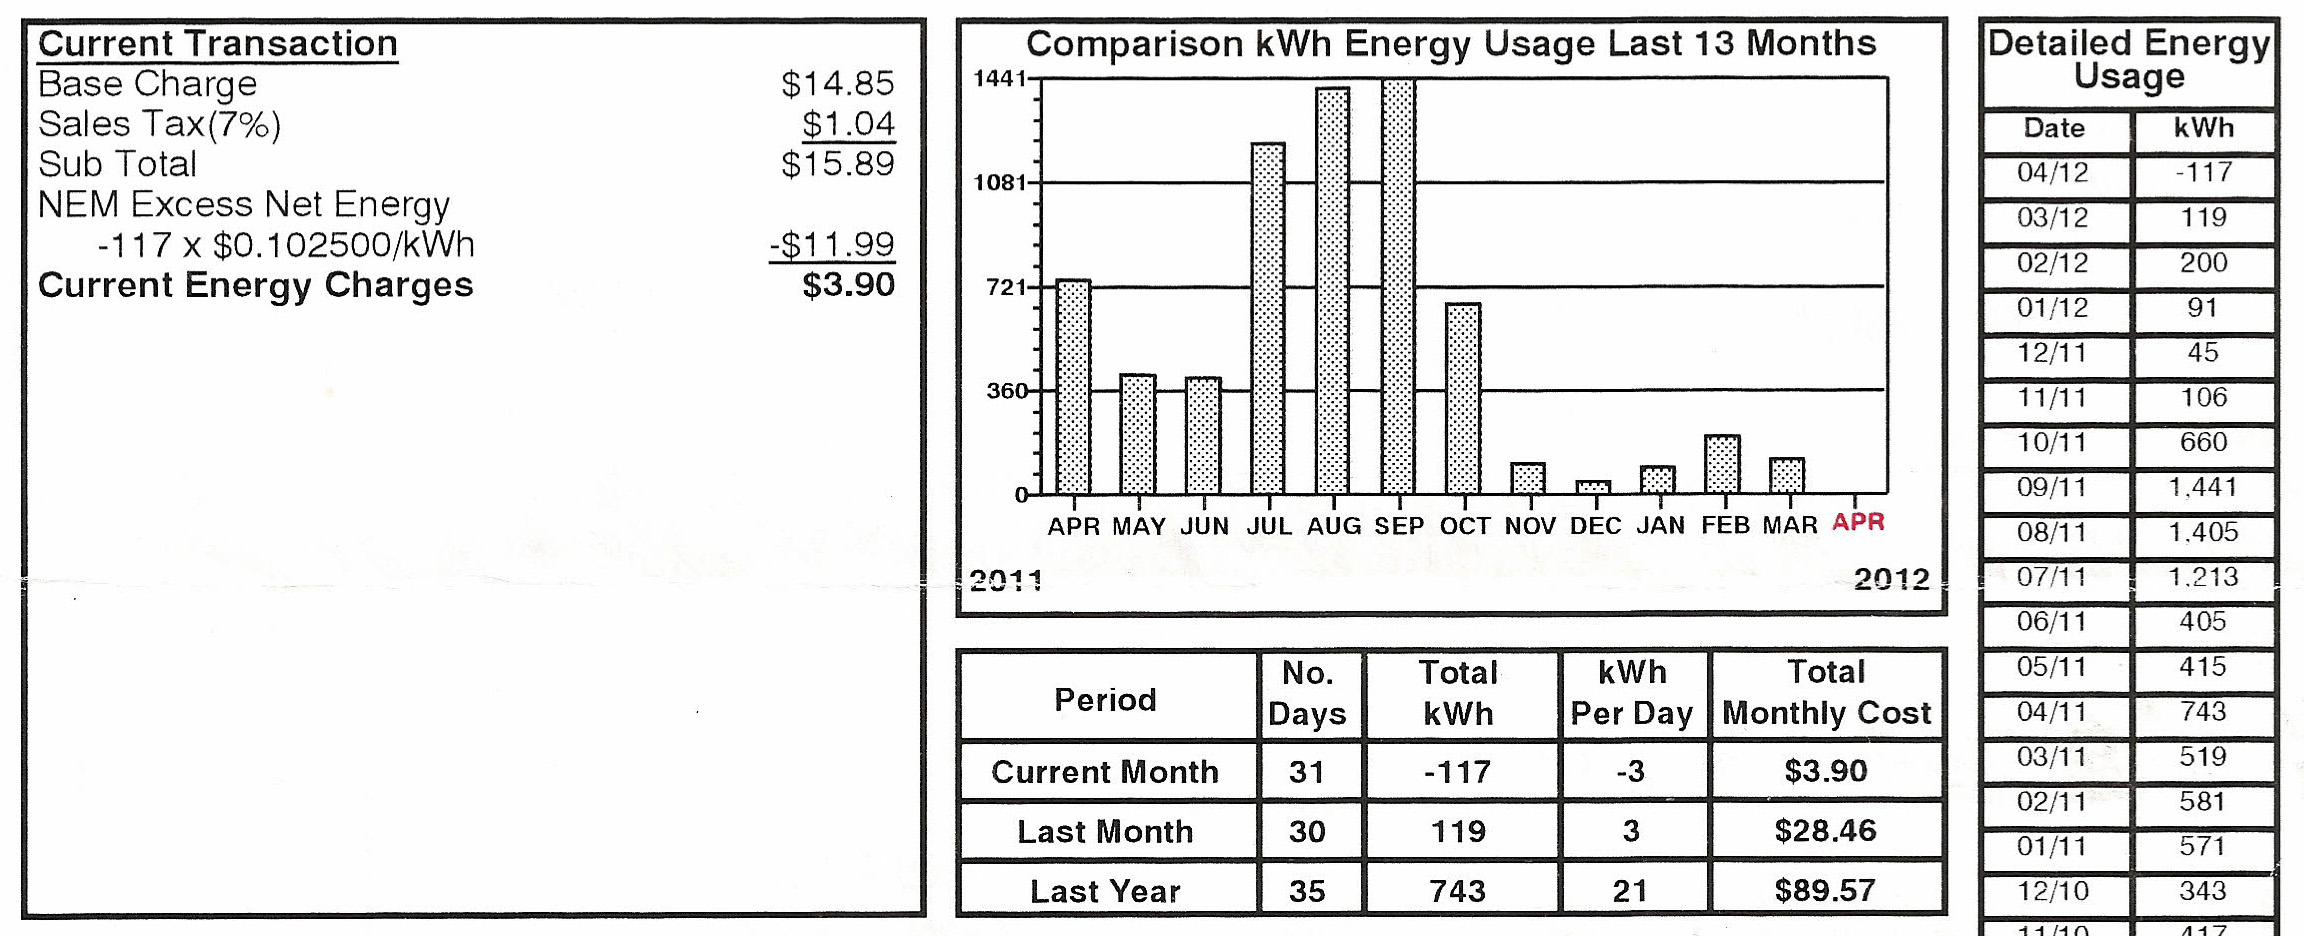 cumming-georgia-home-solar-panel-bills-april-2011-2012